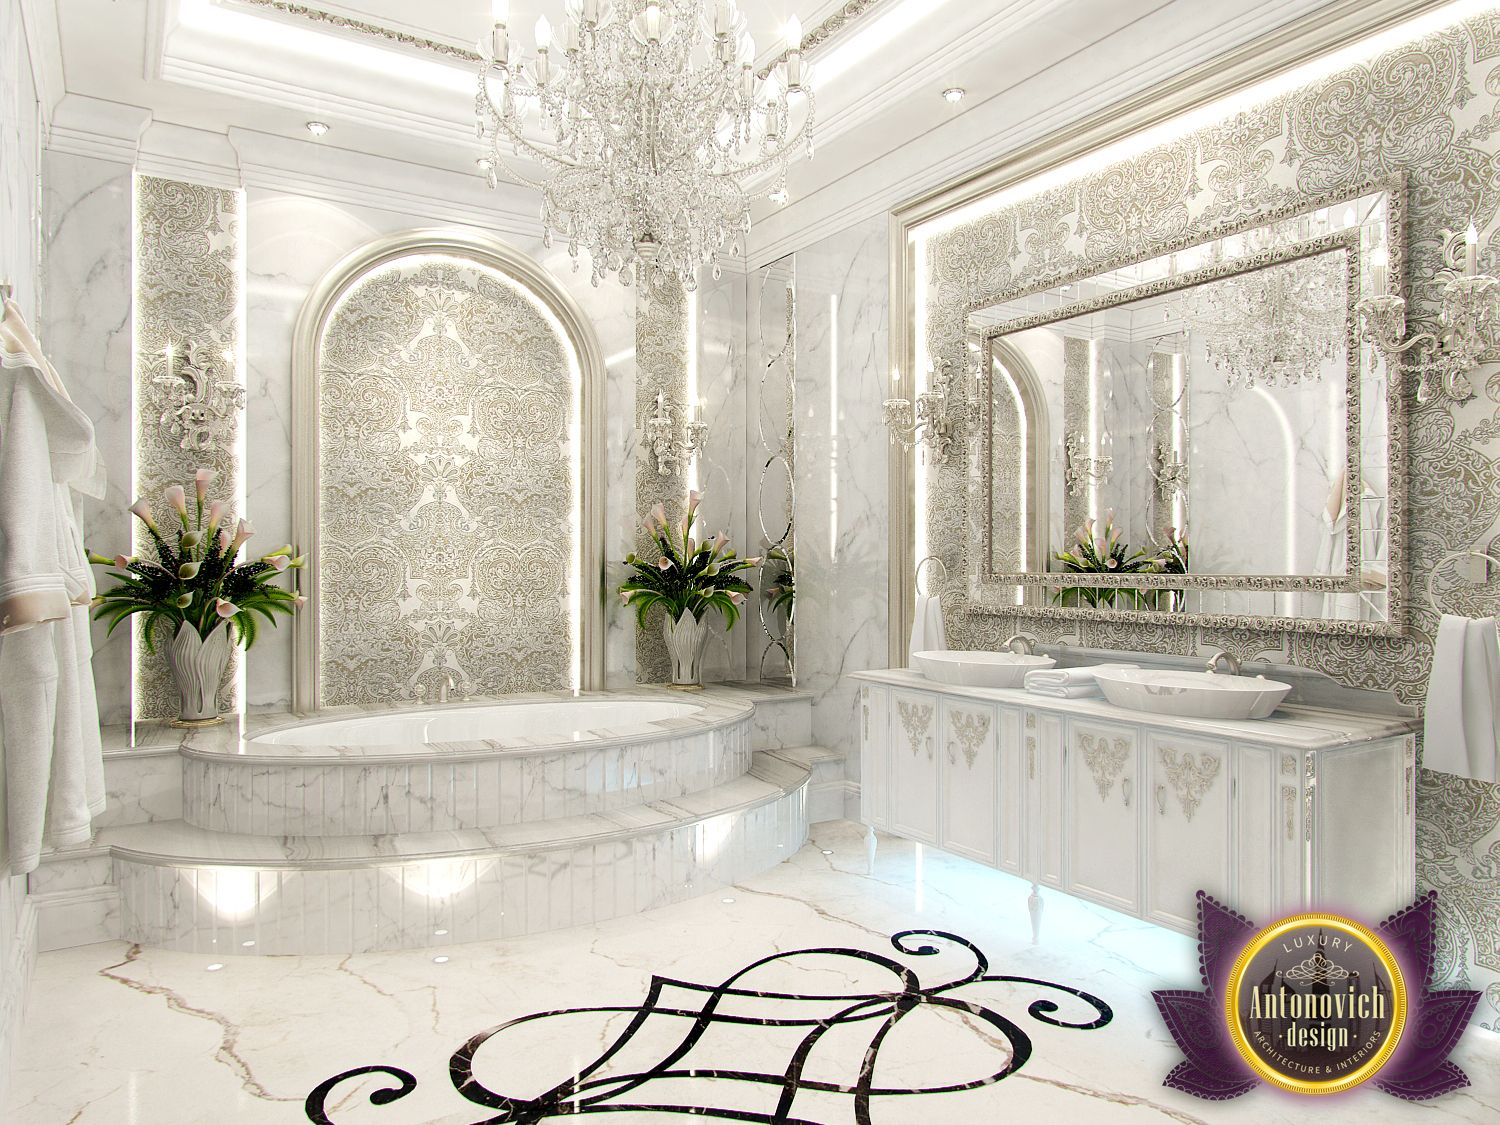 Luxury antonovich design uae interior bathroom from for Bathroom interior design pakistan